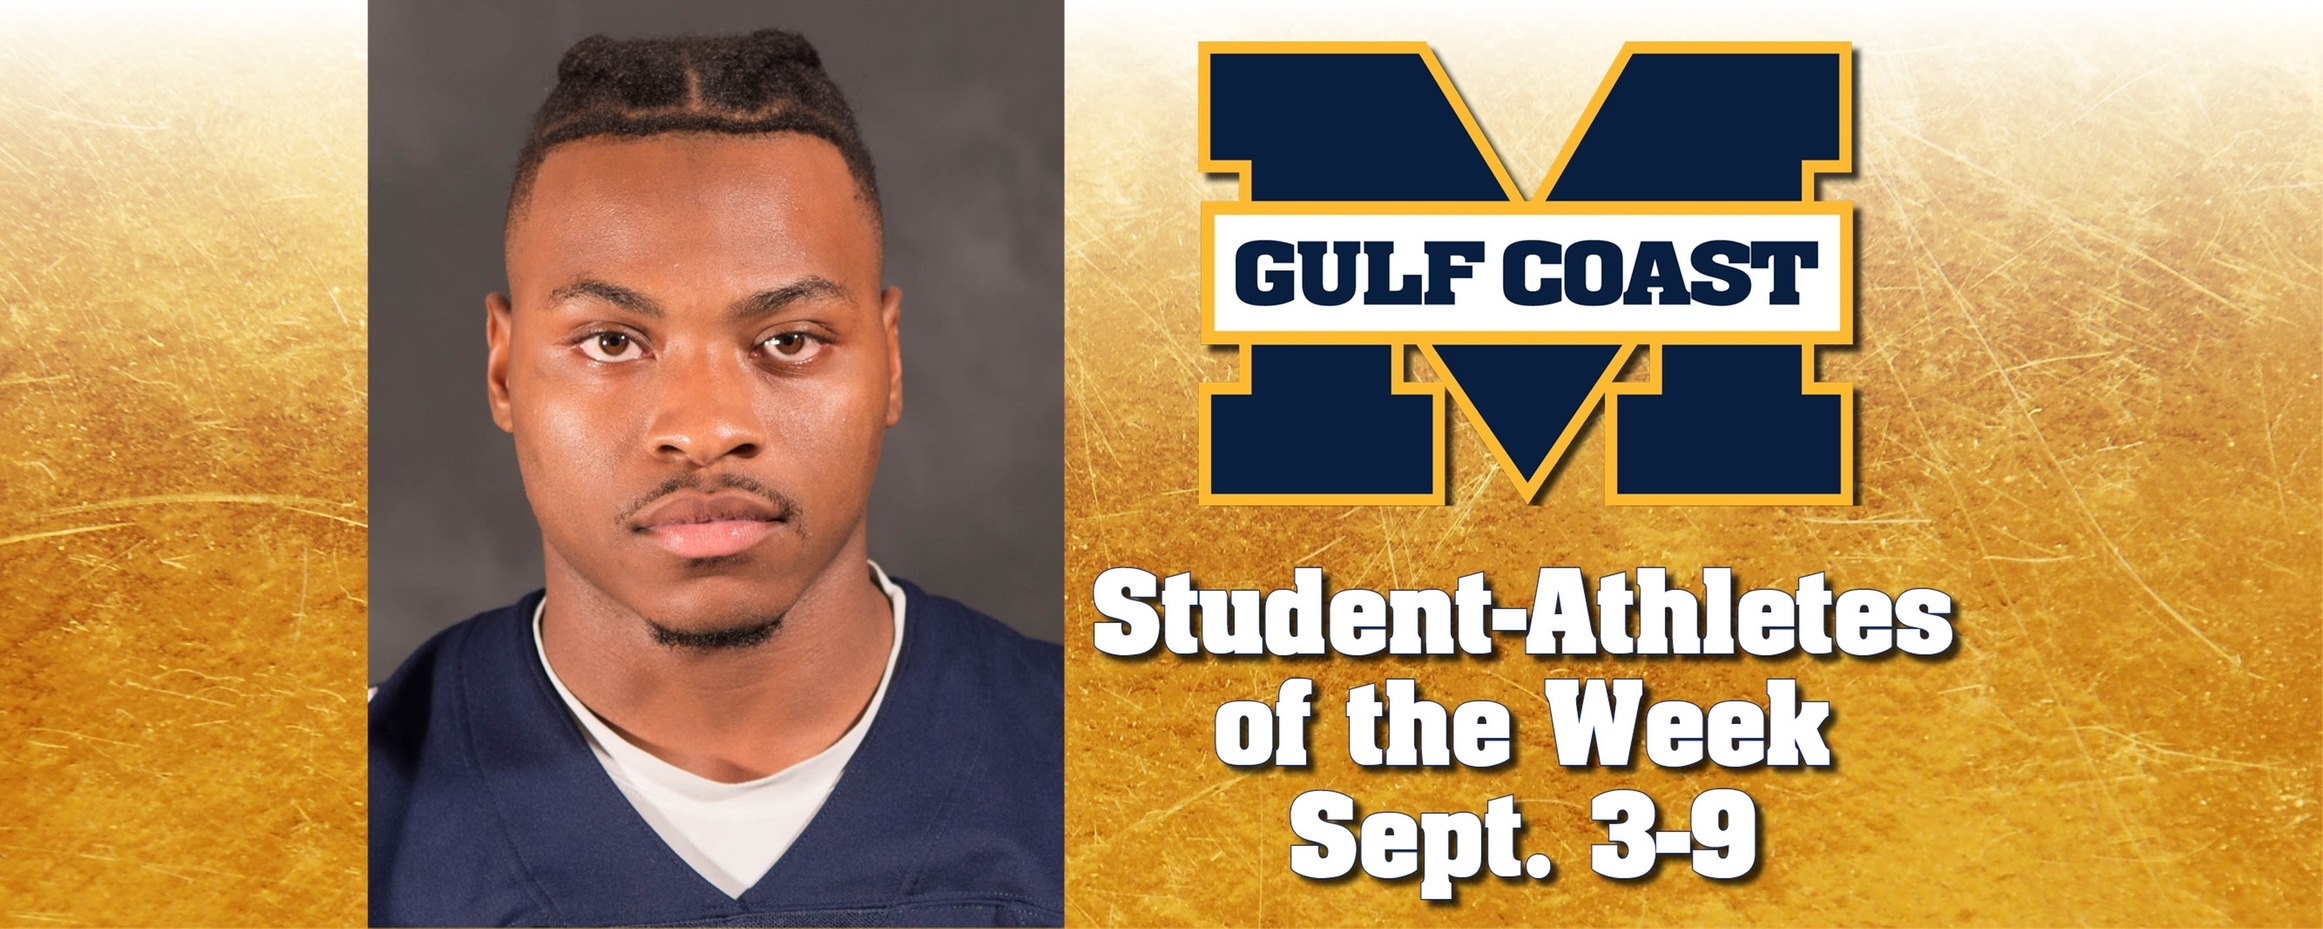 Avery named MGCCC Player of the Week